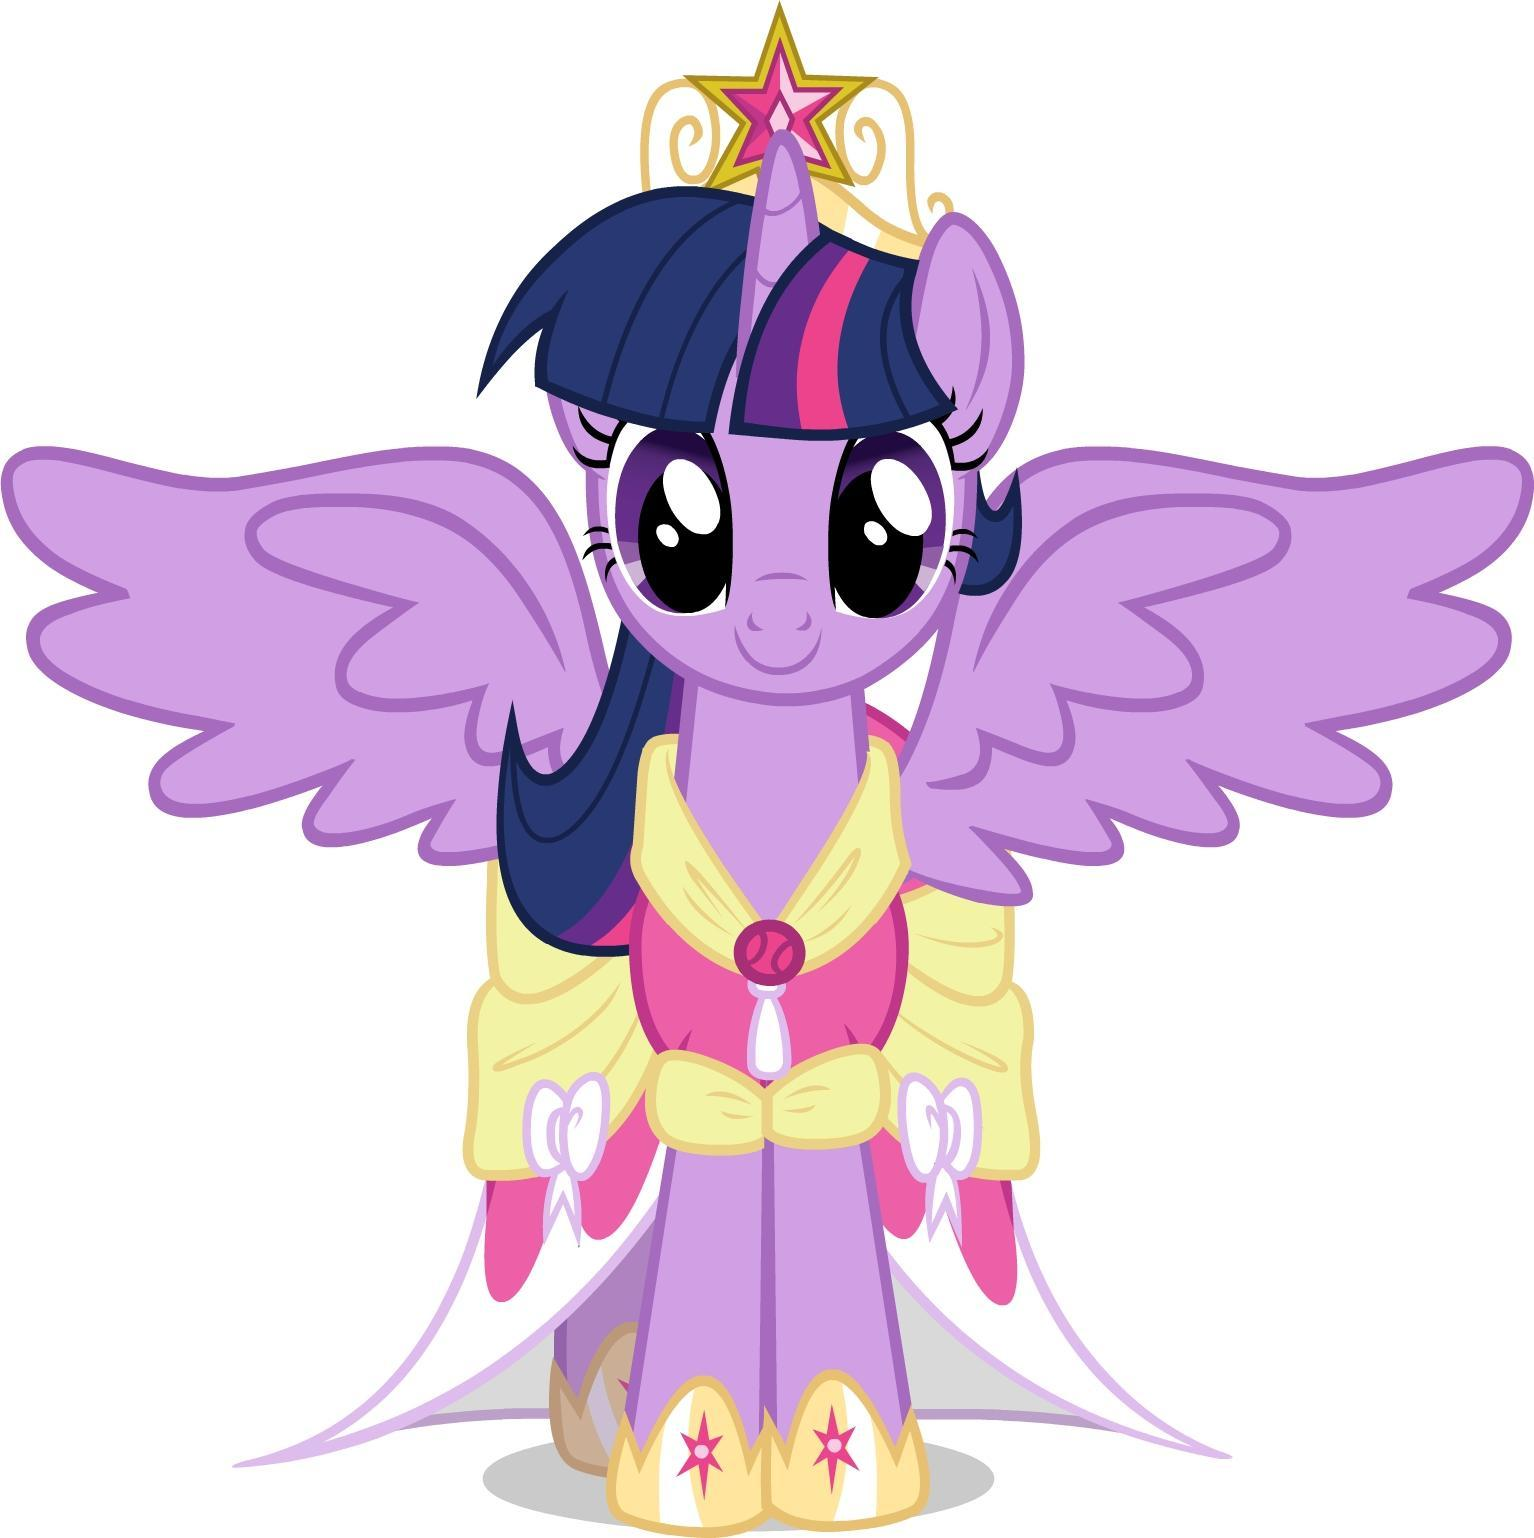 Do you think because Twilight is a Princess, it means she is not the old Twilight?